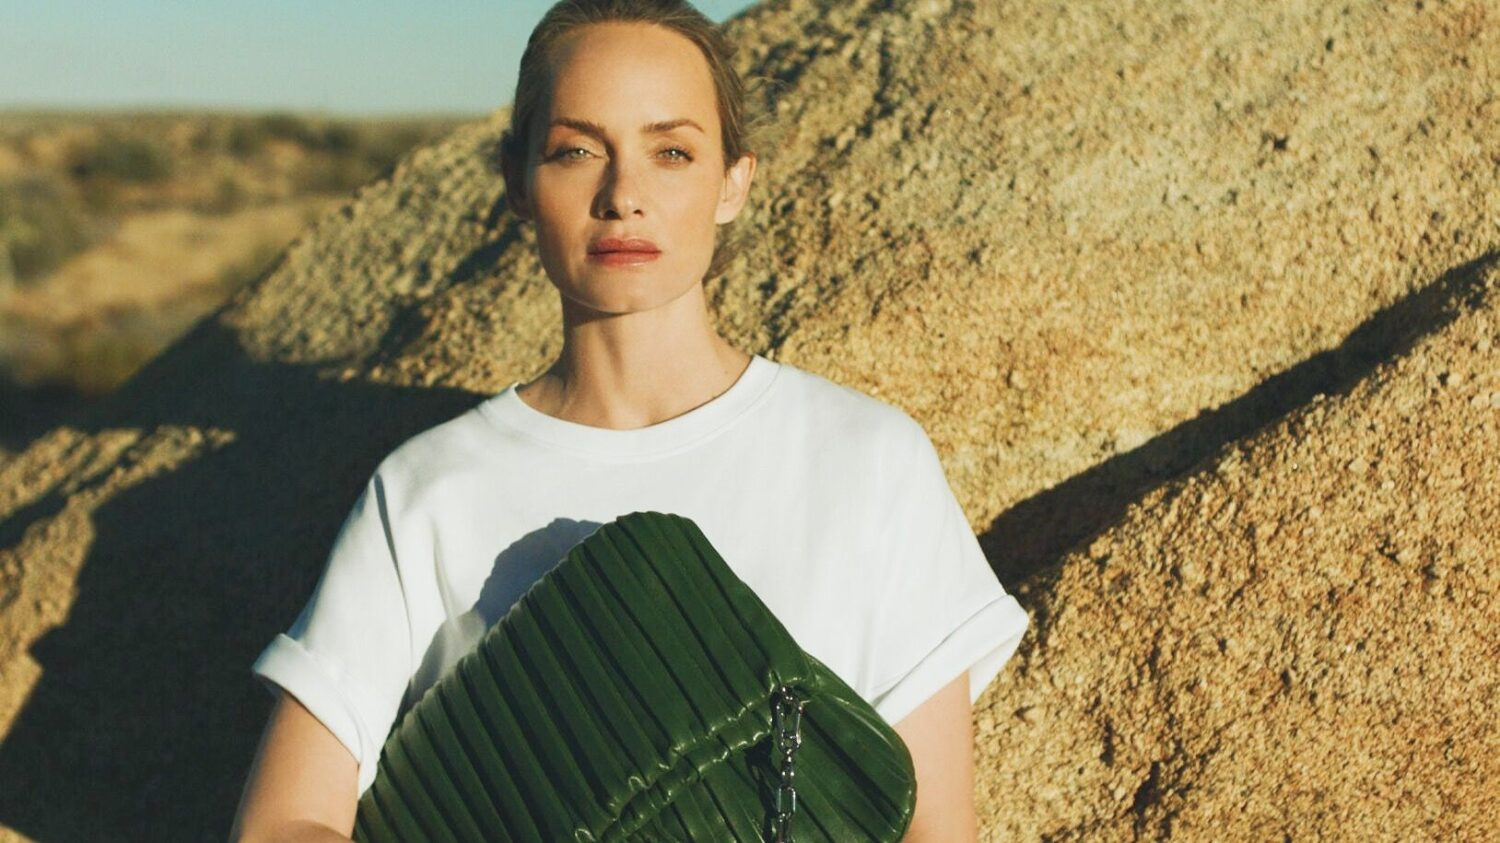 Karl Lagerfield Now Sells Vegan Designer Bags Made With Cactus Leather